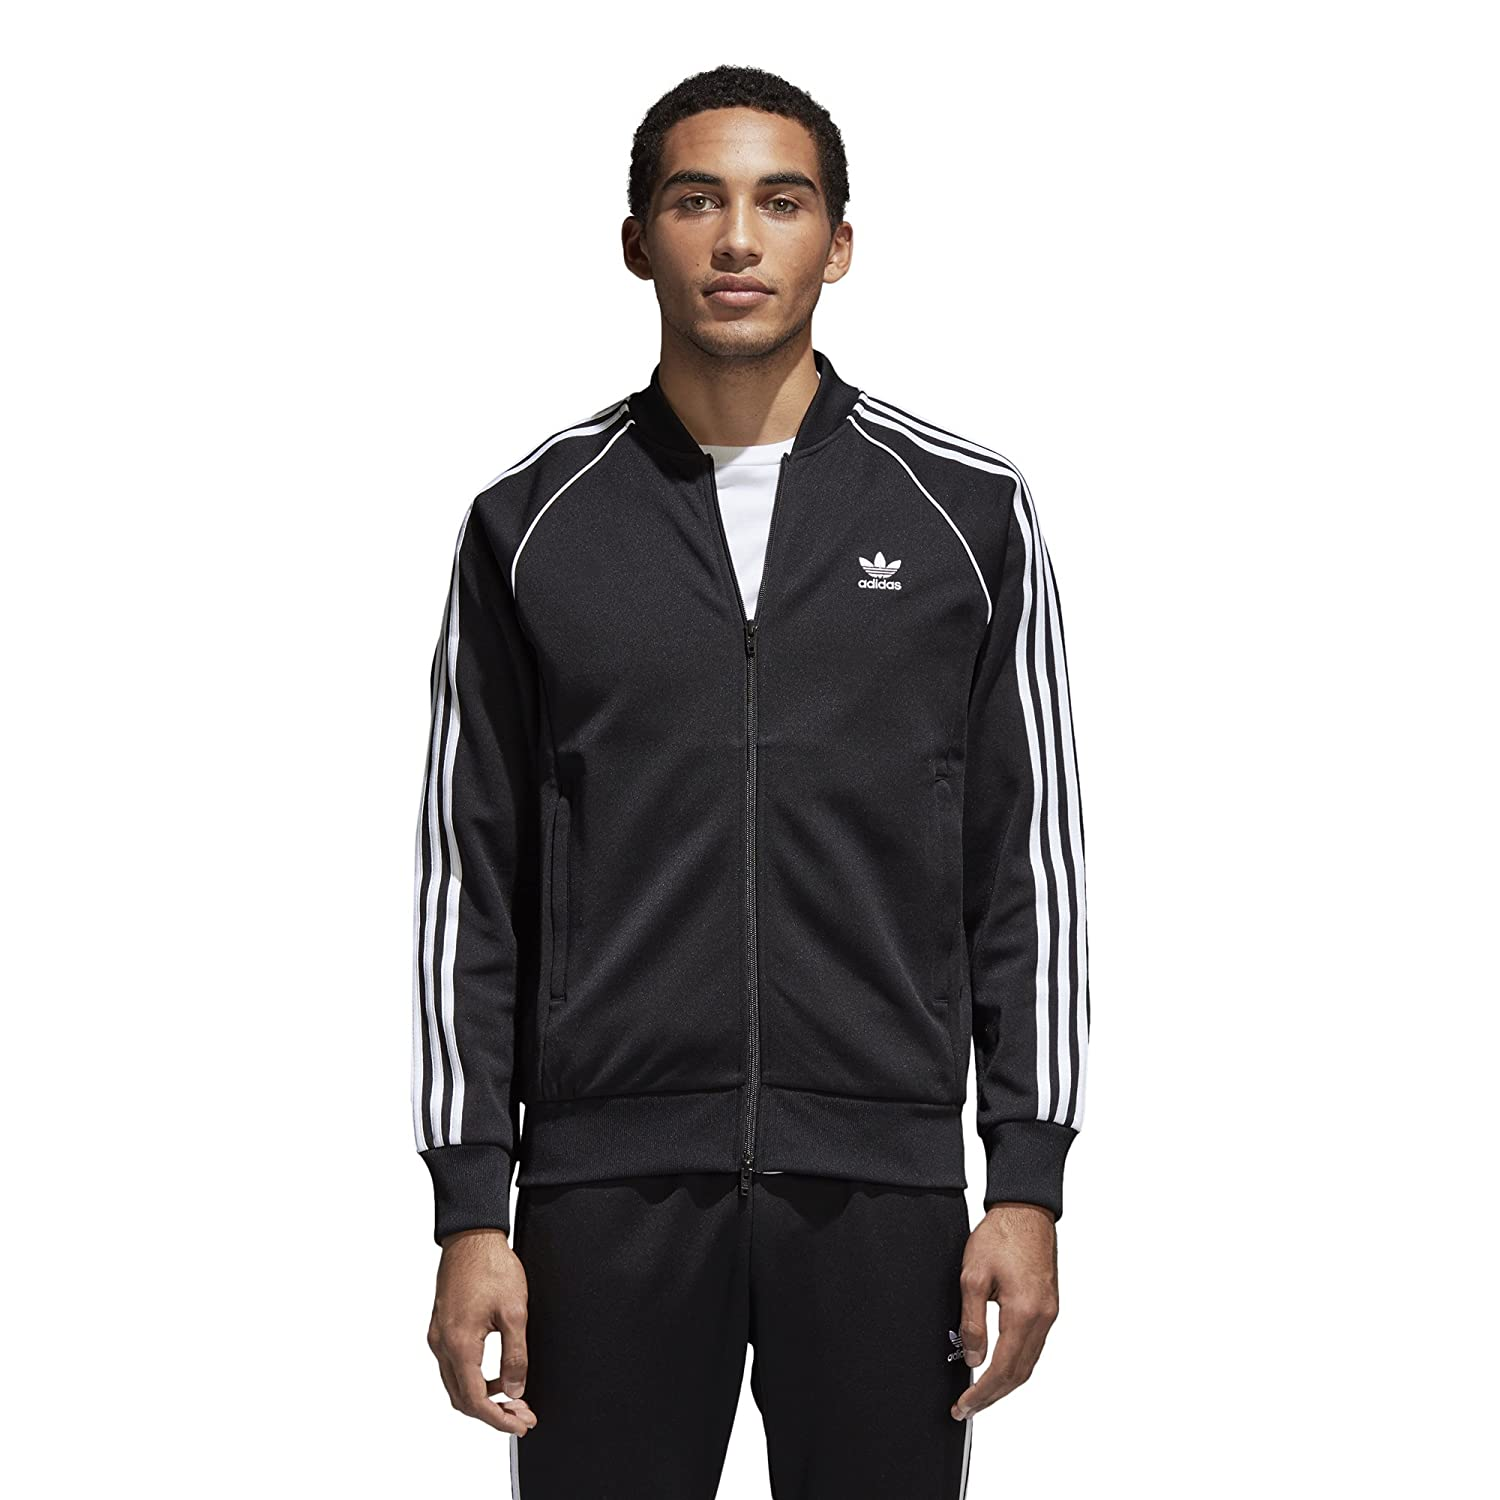 9bb6aa3a875e24 Amazon.com  adidas Men s Superstar Track Jacket  ADIDAS  Clothing